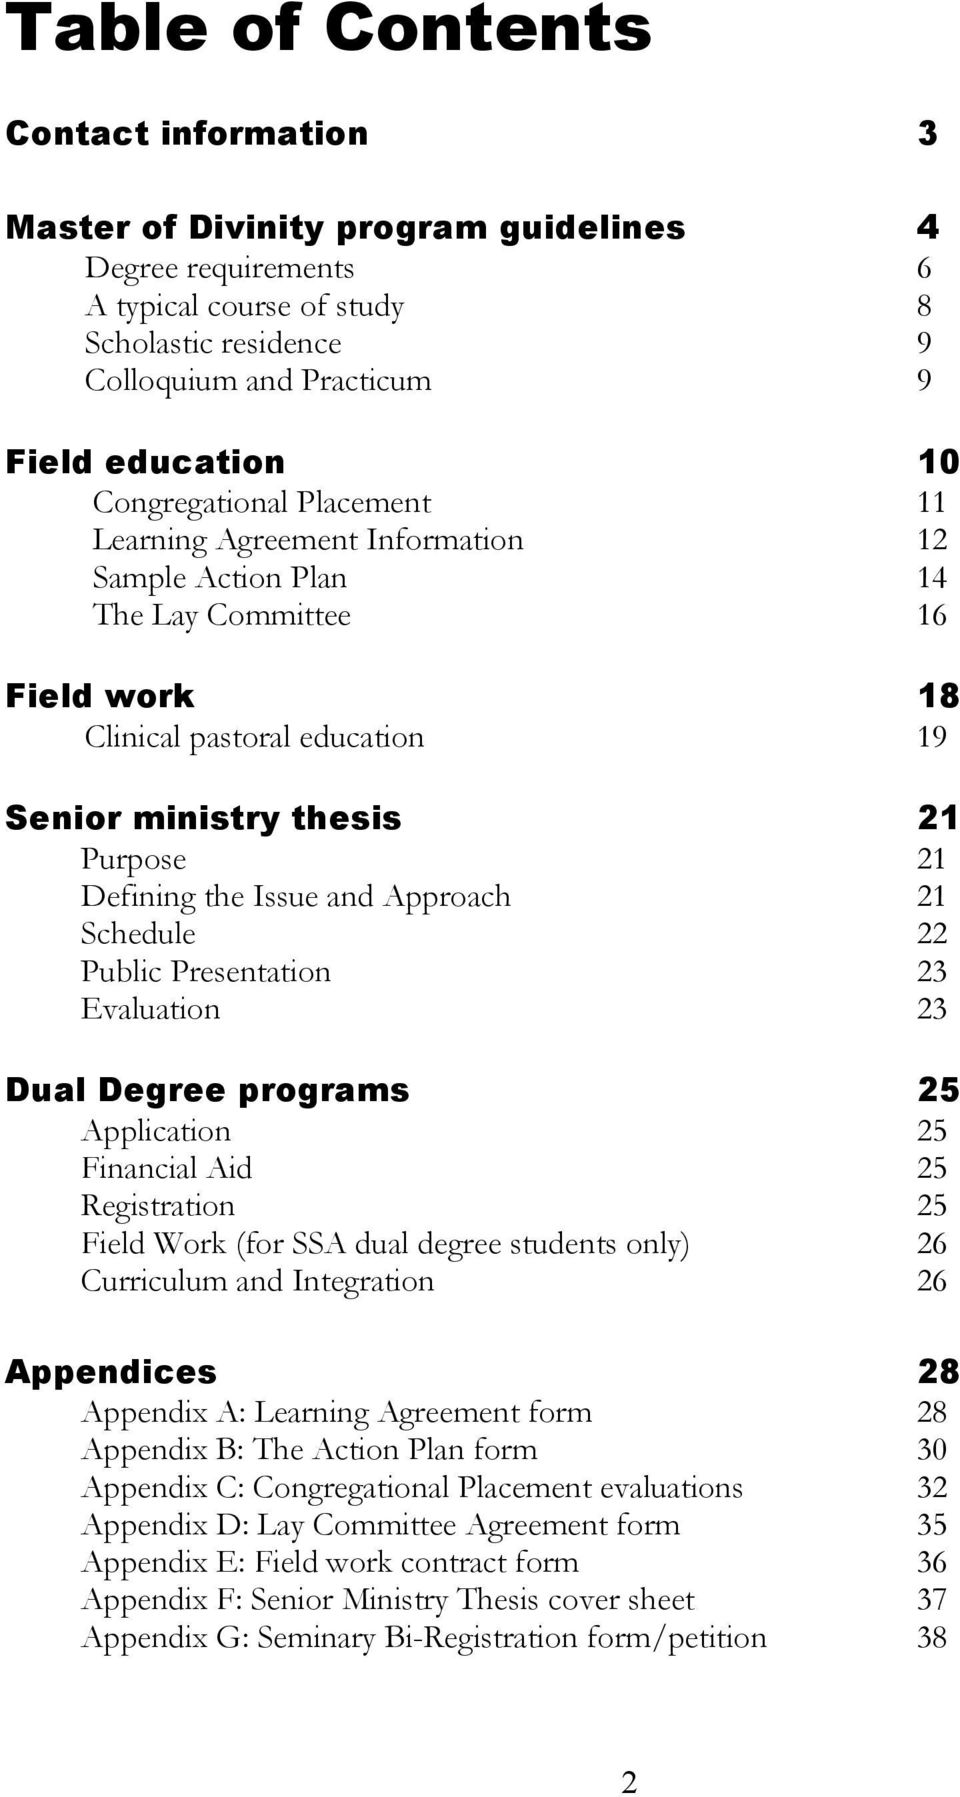 Issue and Approach 21 Schedule 22 Public Presentation 23 Evaluation 23 Dual Degree programs 25 Application 25 Financial Aid 25 Registration 25 Field Work (for SSA dual degree students only) 26